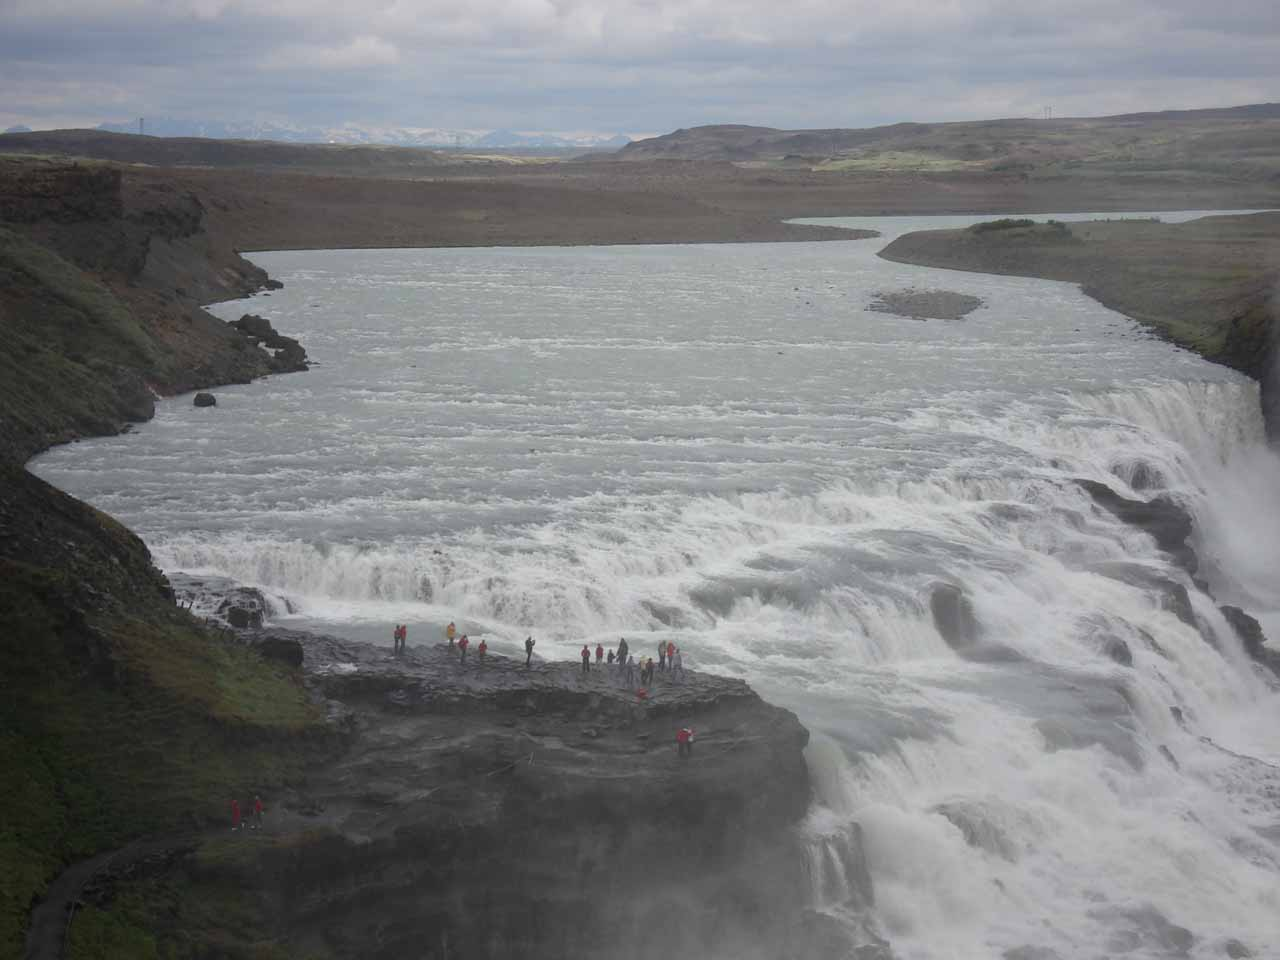 Looking upstream above the brink of Gullfoss with many onlookers